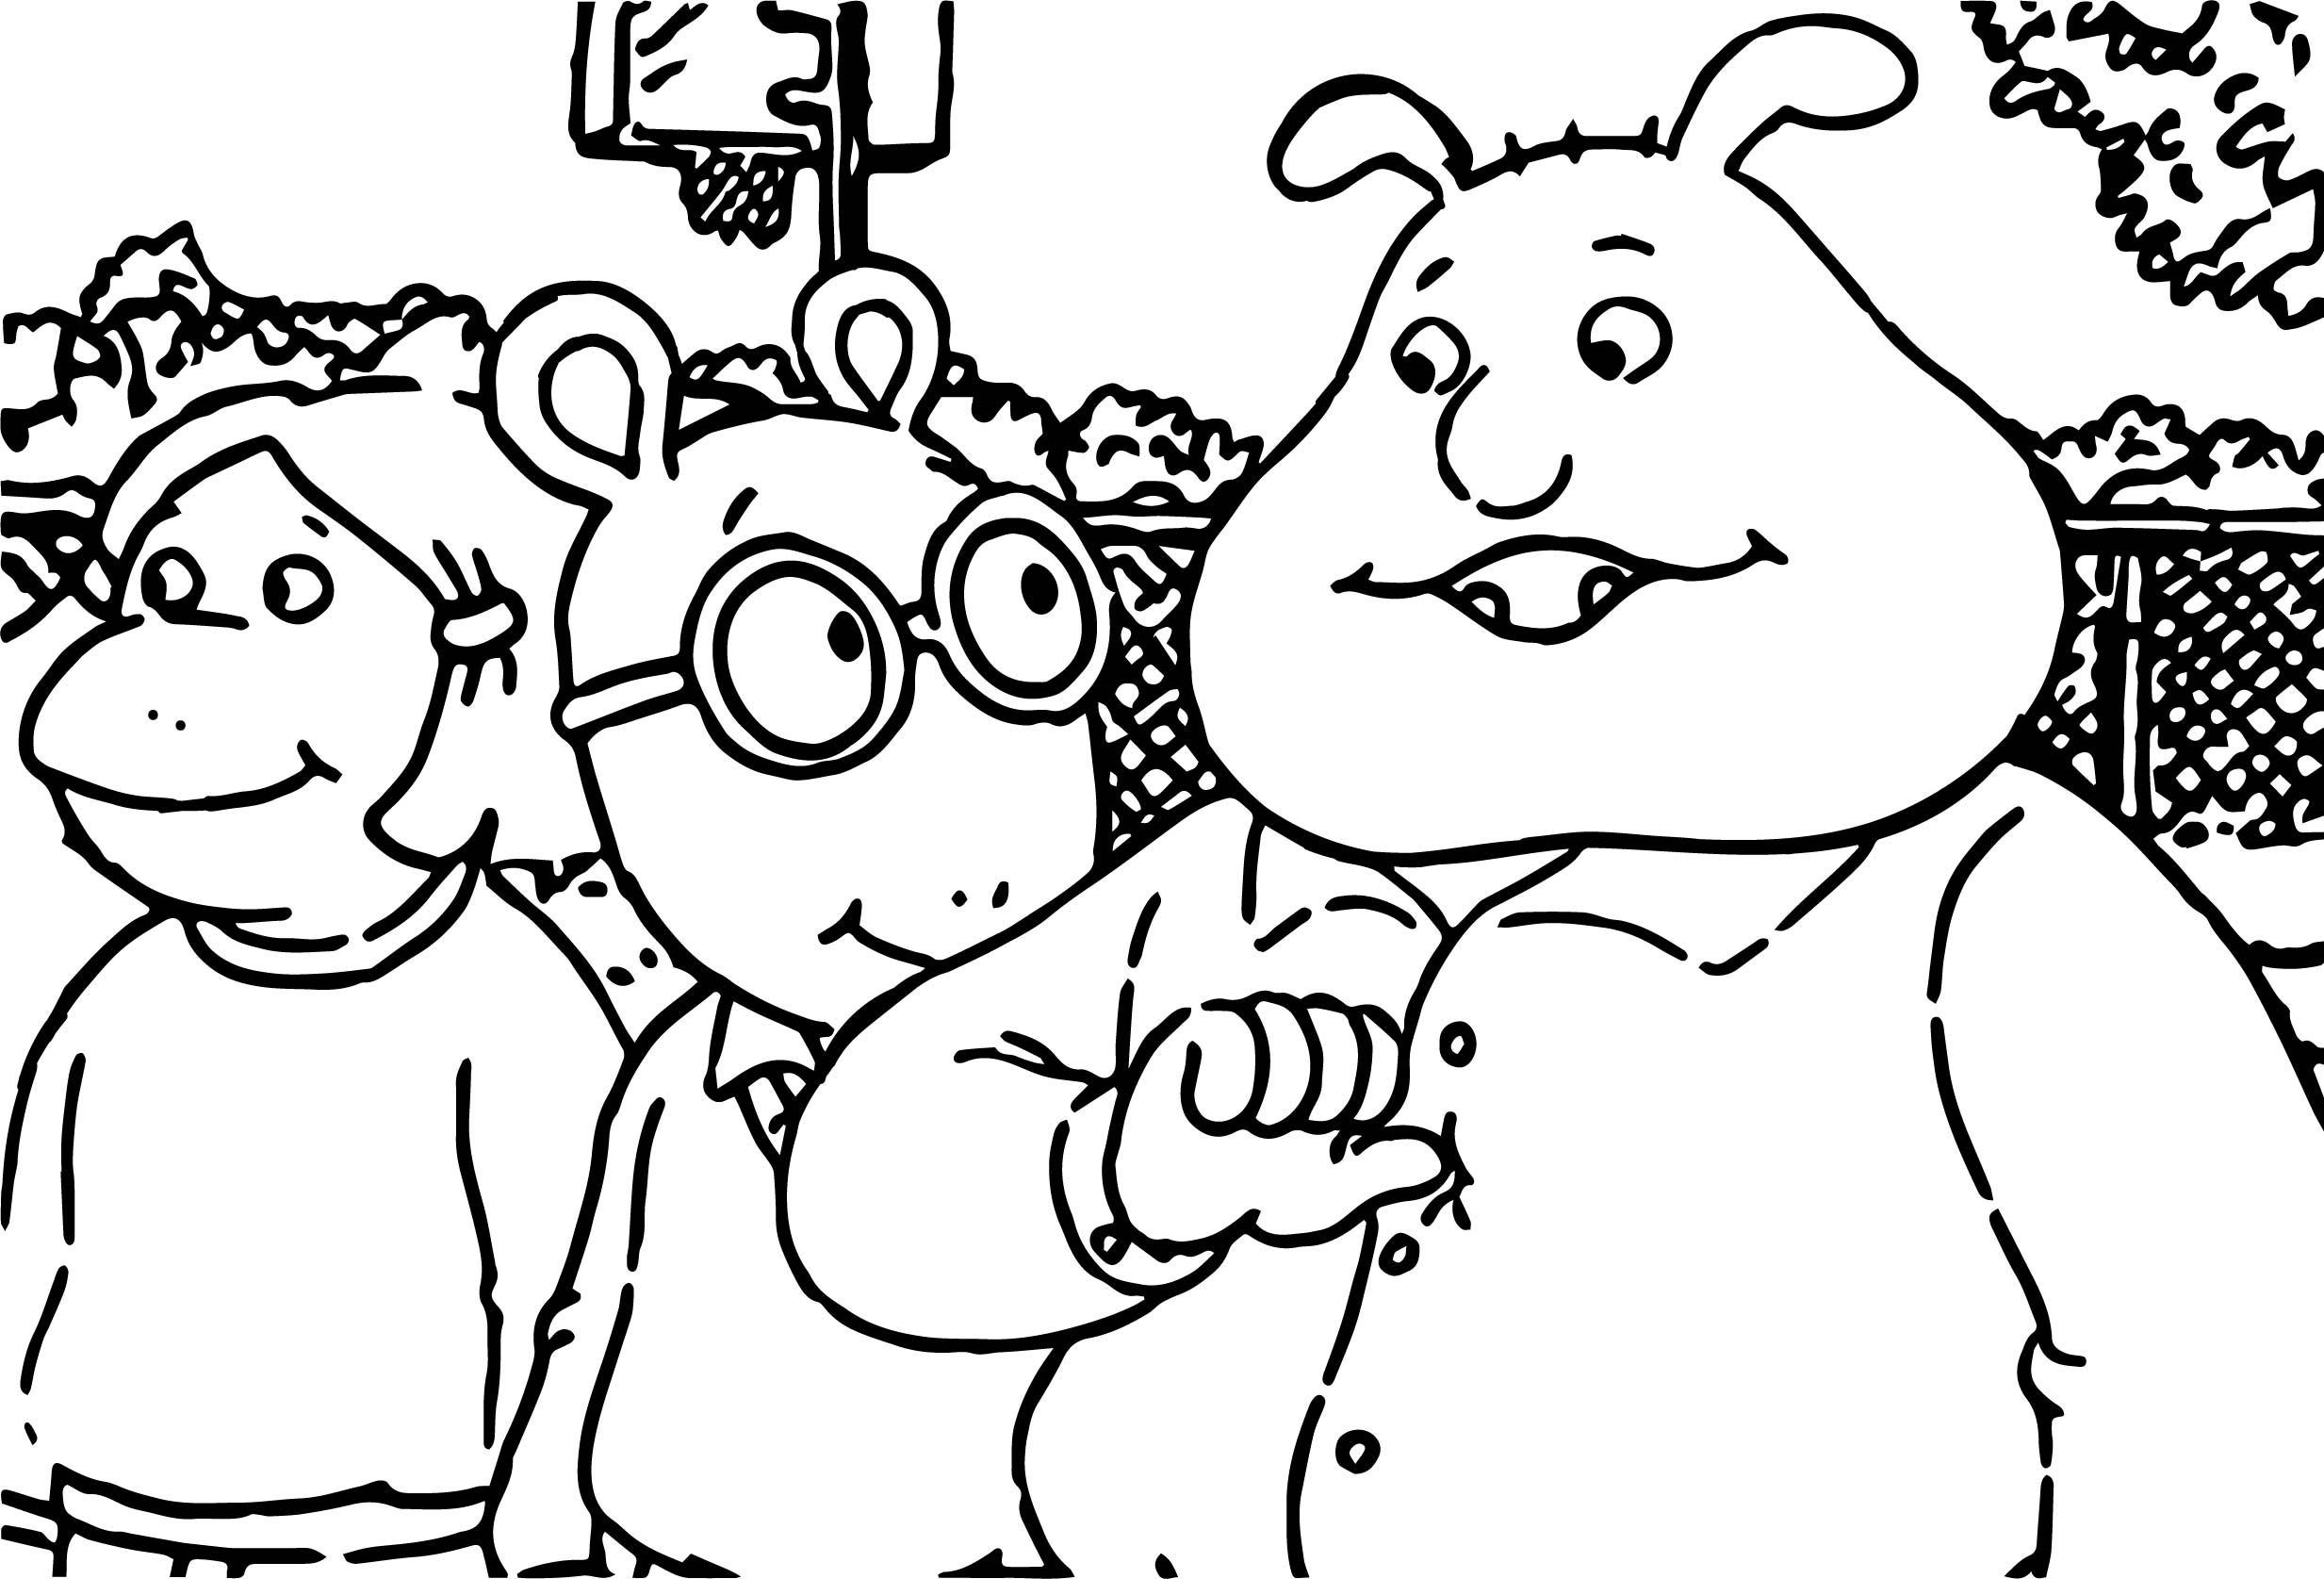 coloring pages arthur and friends - photo#11